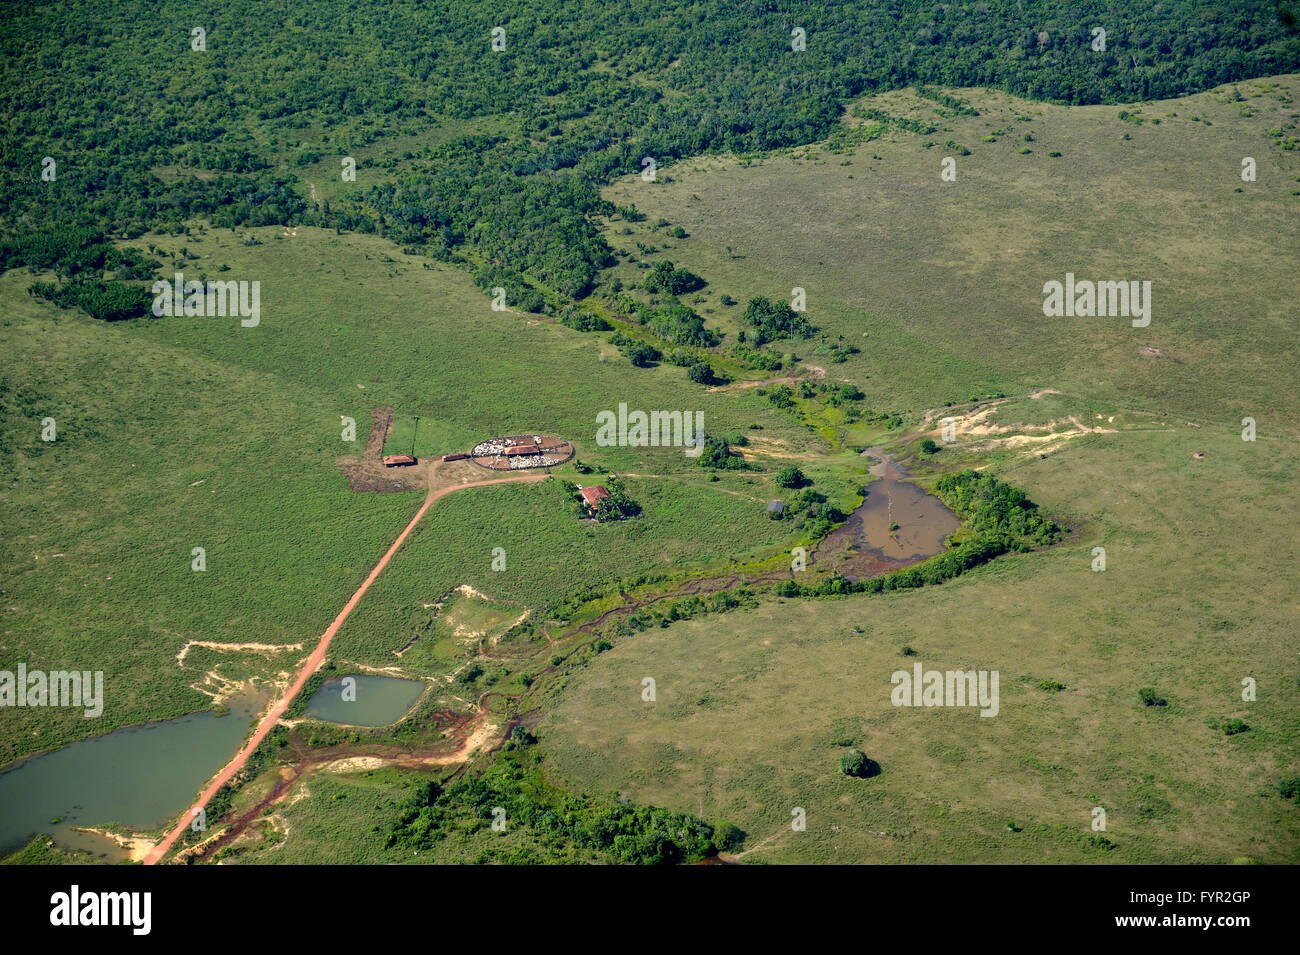 Aerial view, large scale clearing for pastures, Amazon Rainforest, District Itaituba, State of Para, Brazil - Stock Image